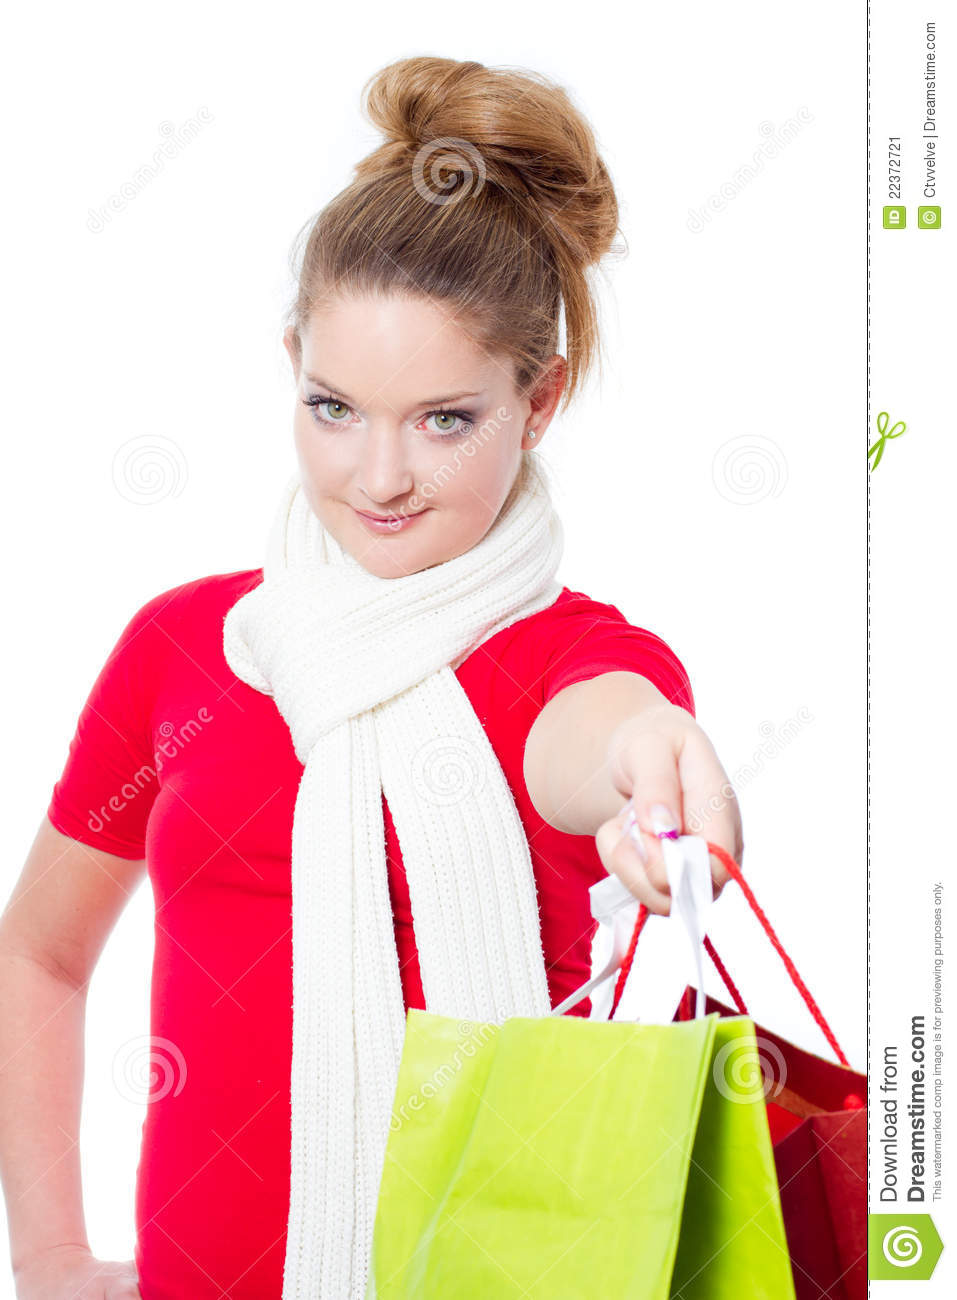 Elegant Woman Holding Many Colorful Bags Shopping Fashion Image Stock Photo U0026 More Pictures Of Addiction ...